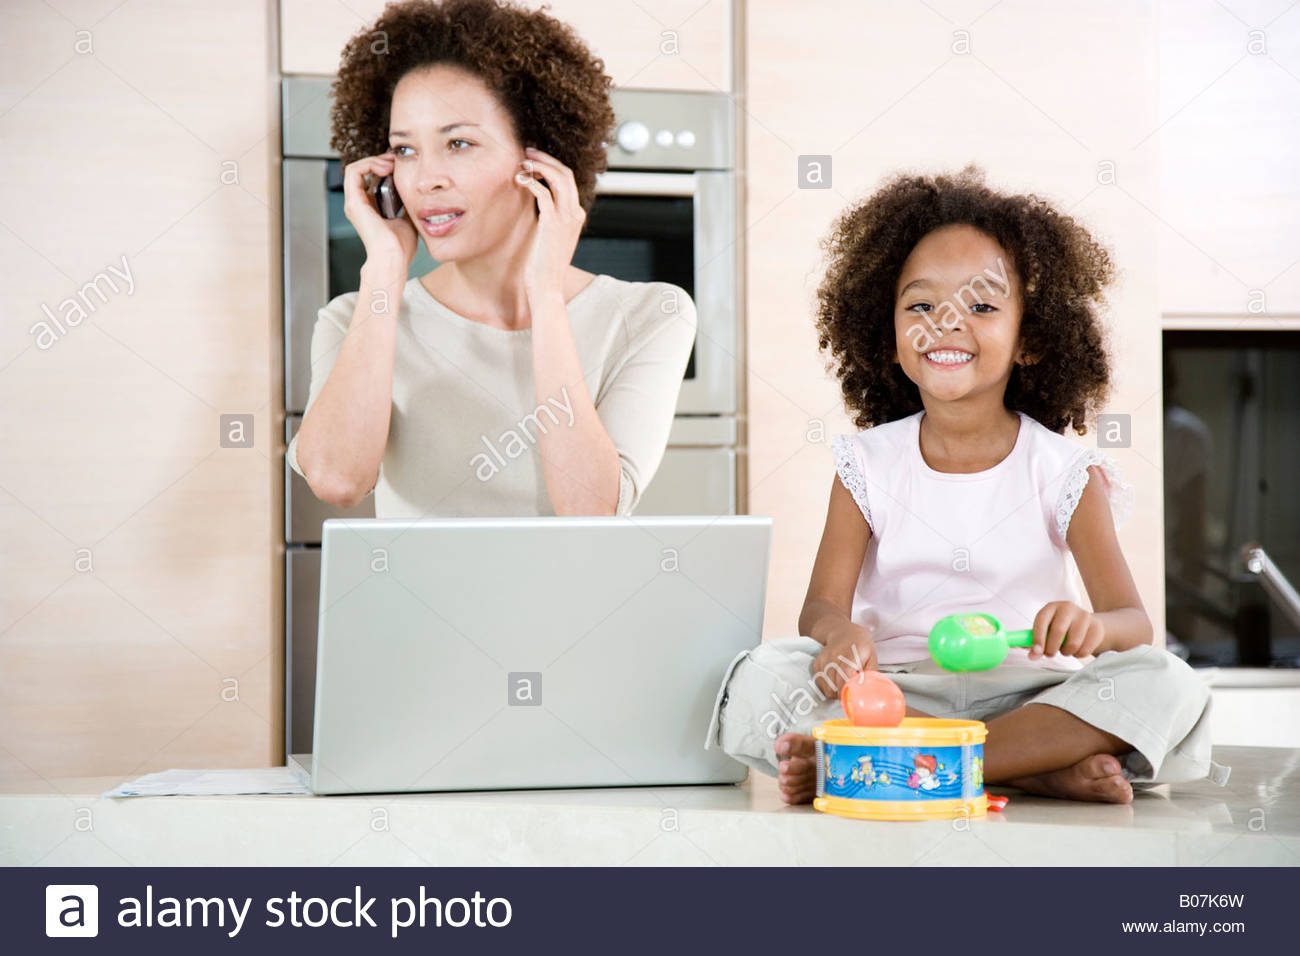 Stressed mother working from home while daughter plays a toy drum - Stock Image